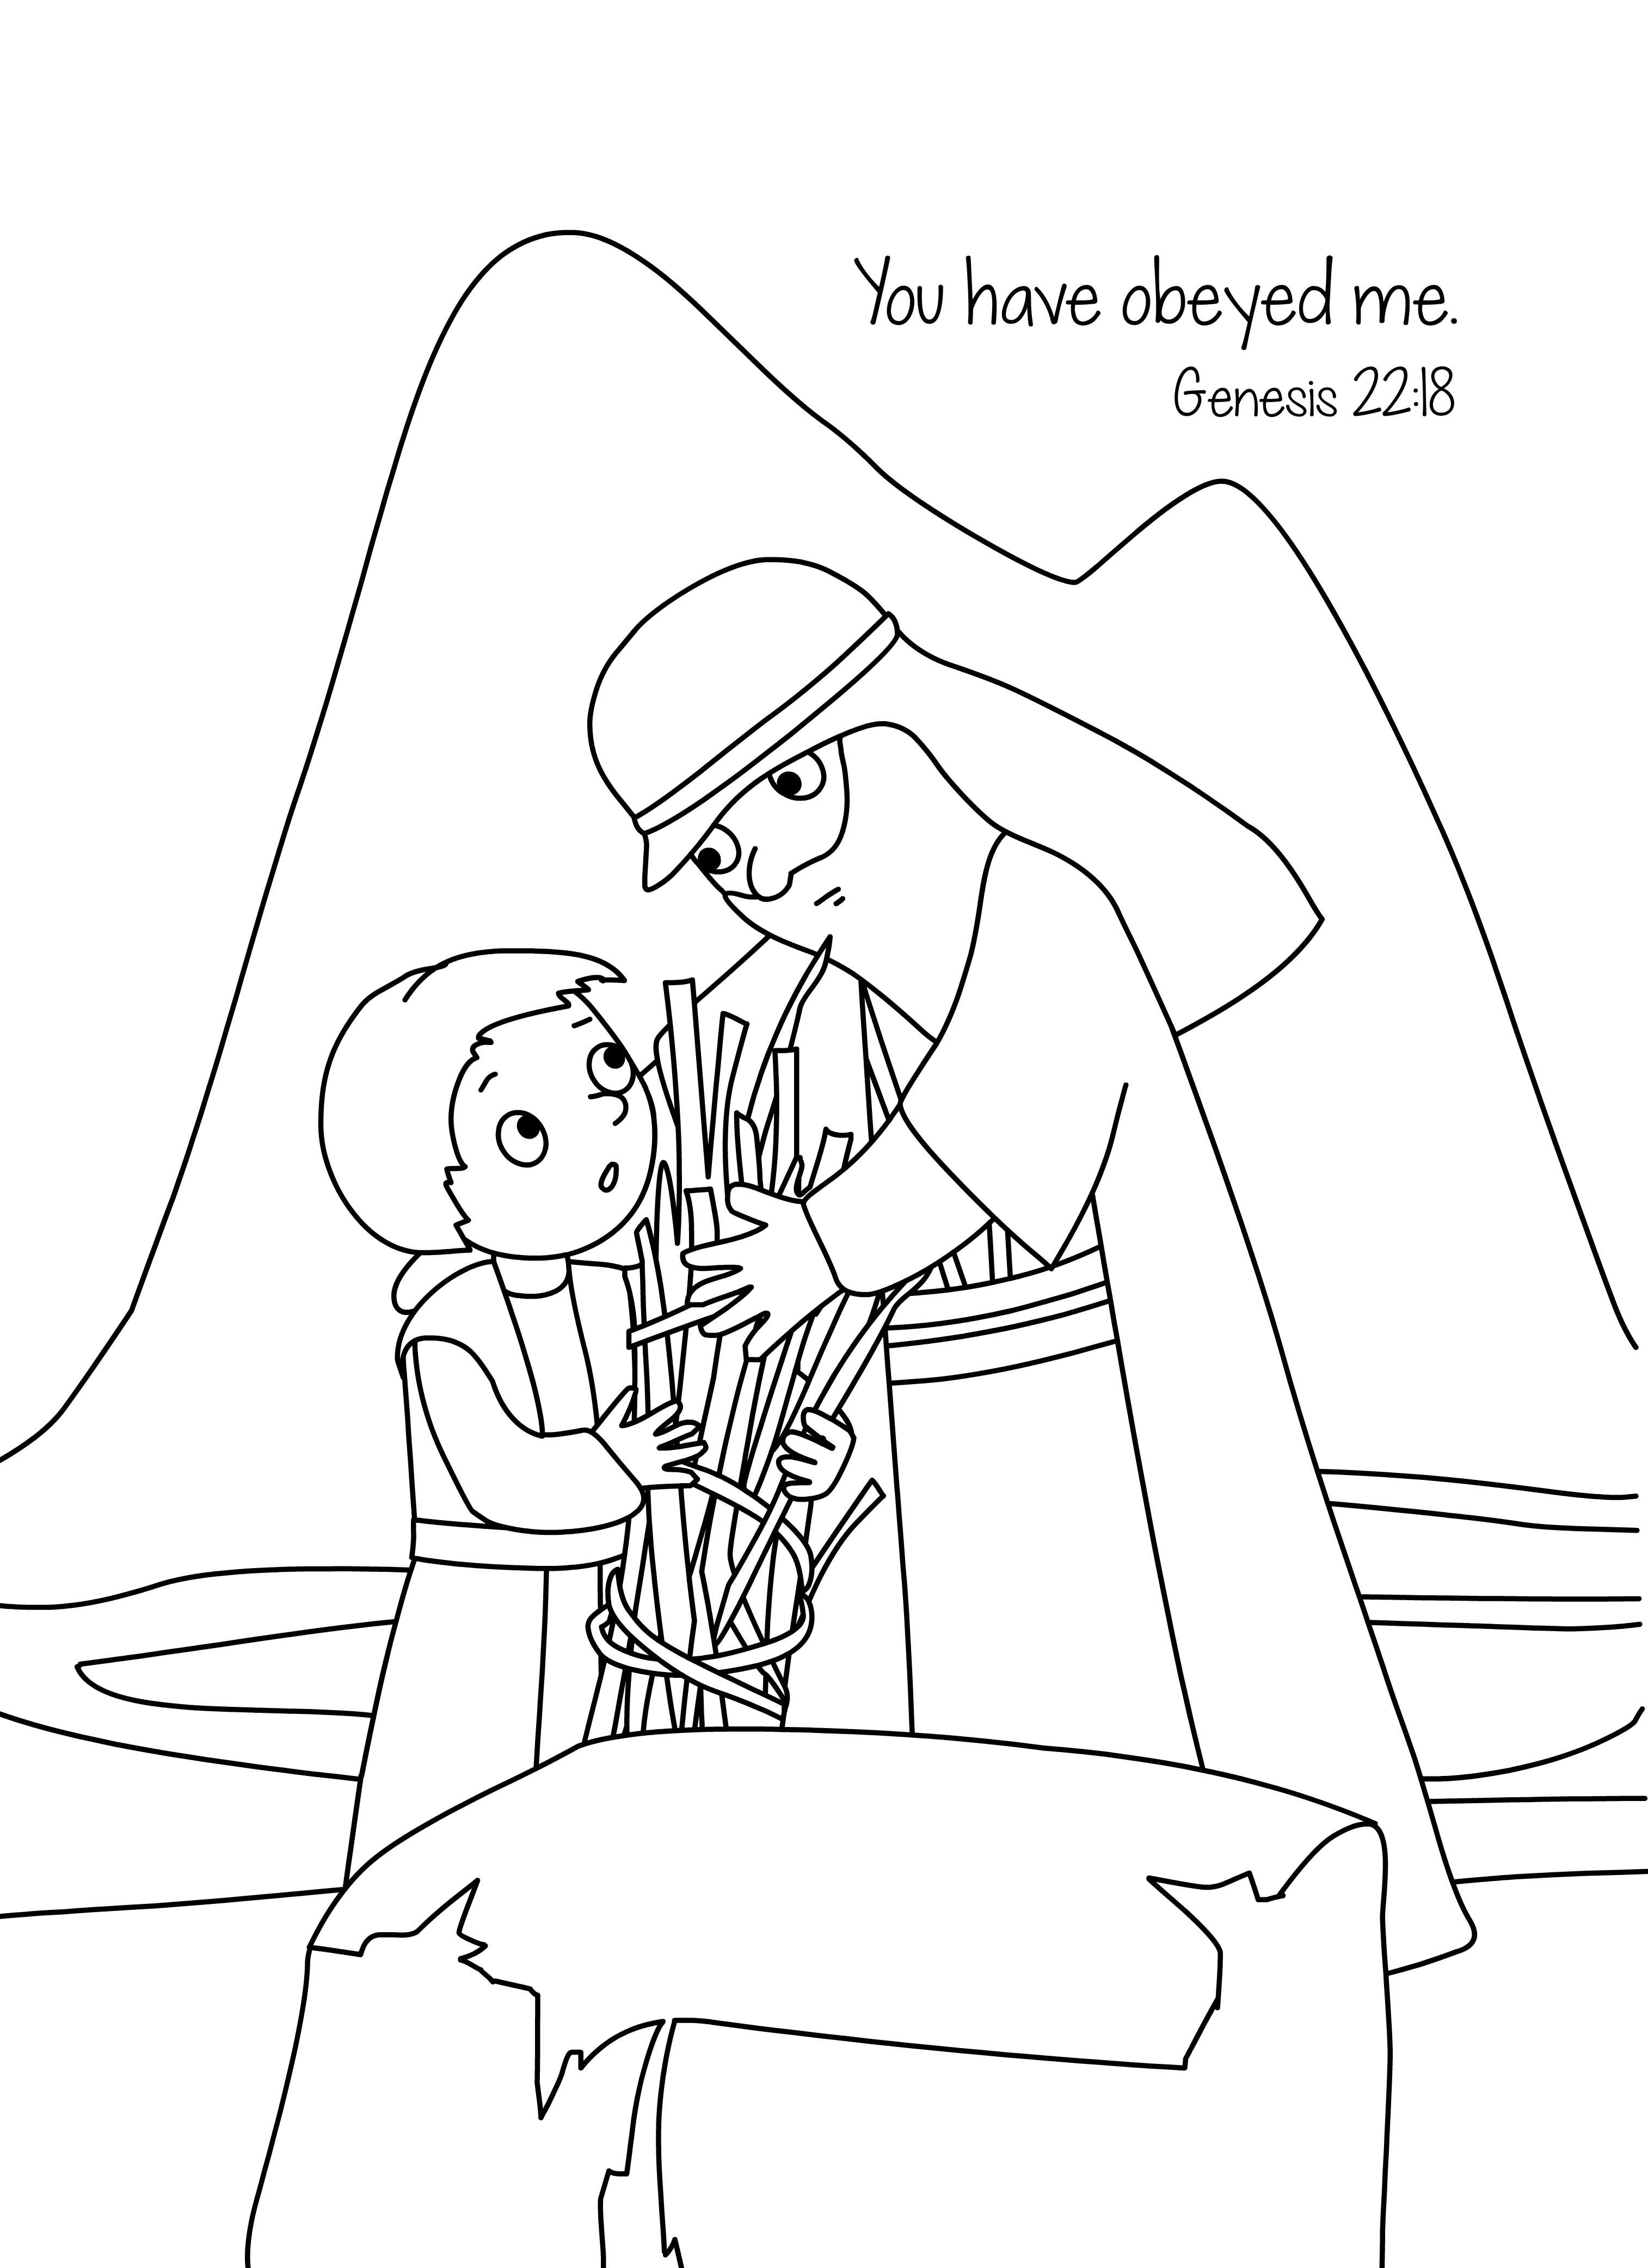 bible coloring pages for preschoolers bible story coloring pages spring 2019 illustrated preschoolers coloring pages bible for